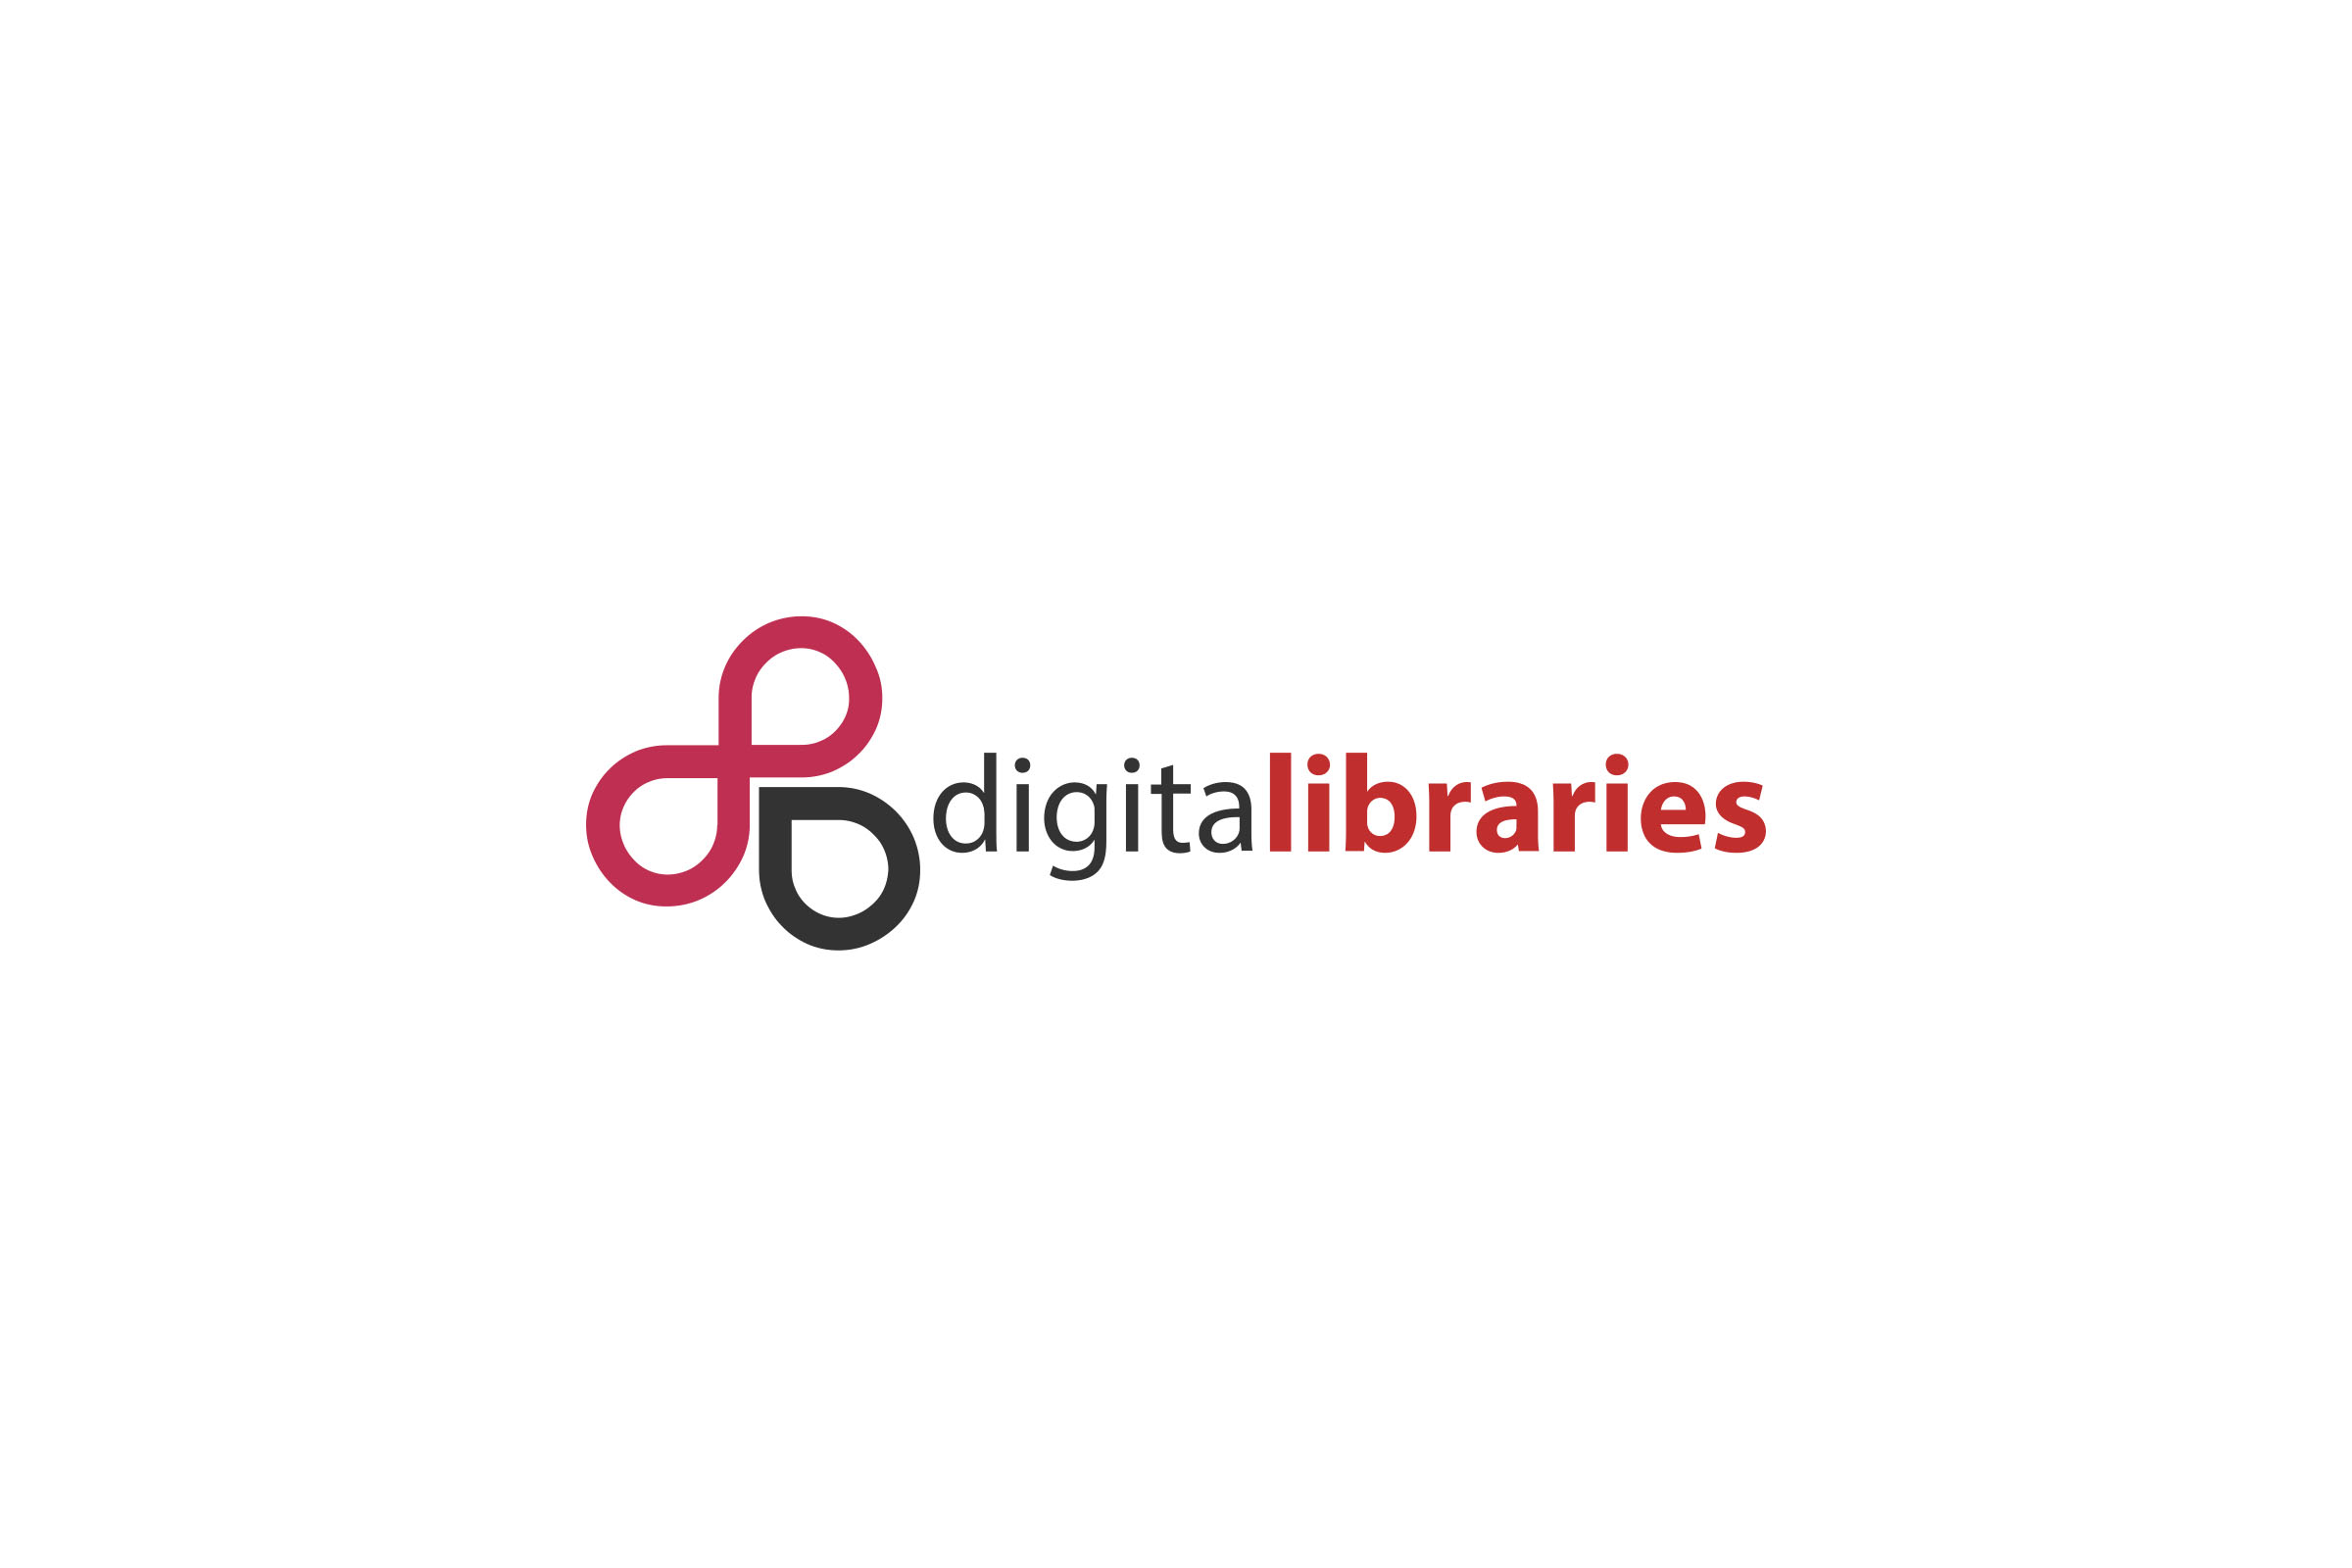 Digitalibraries